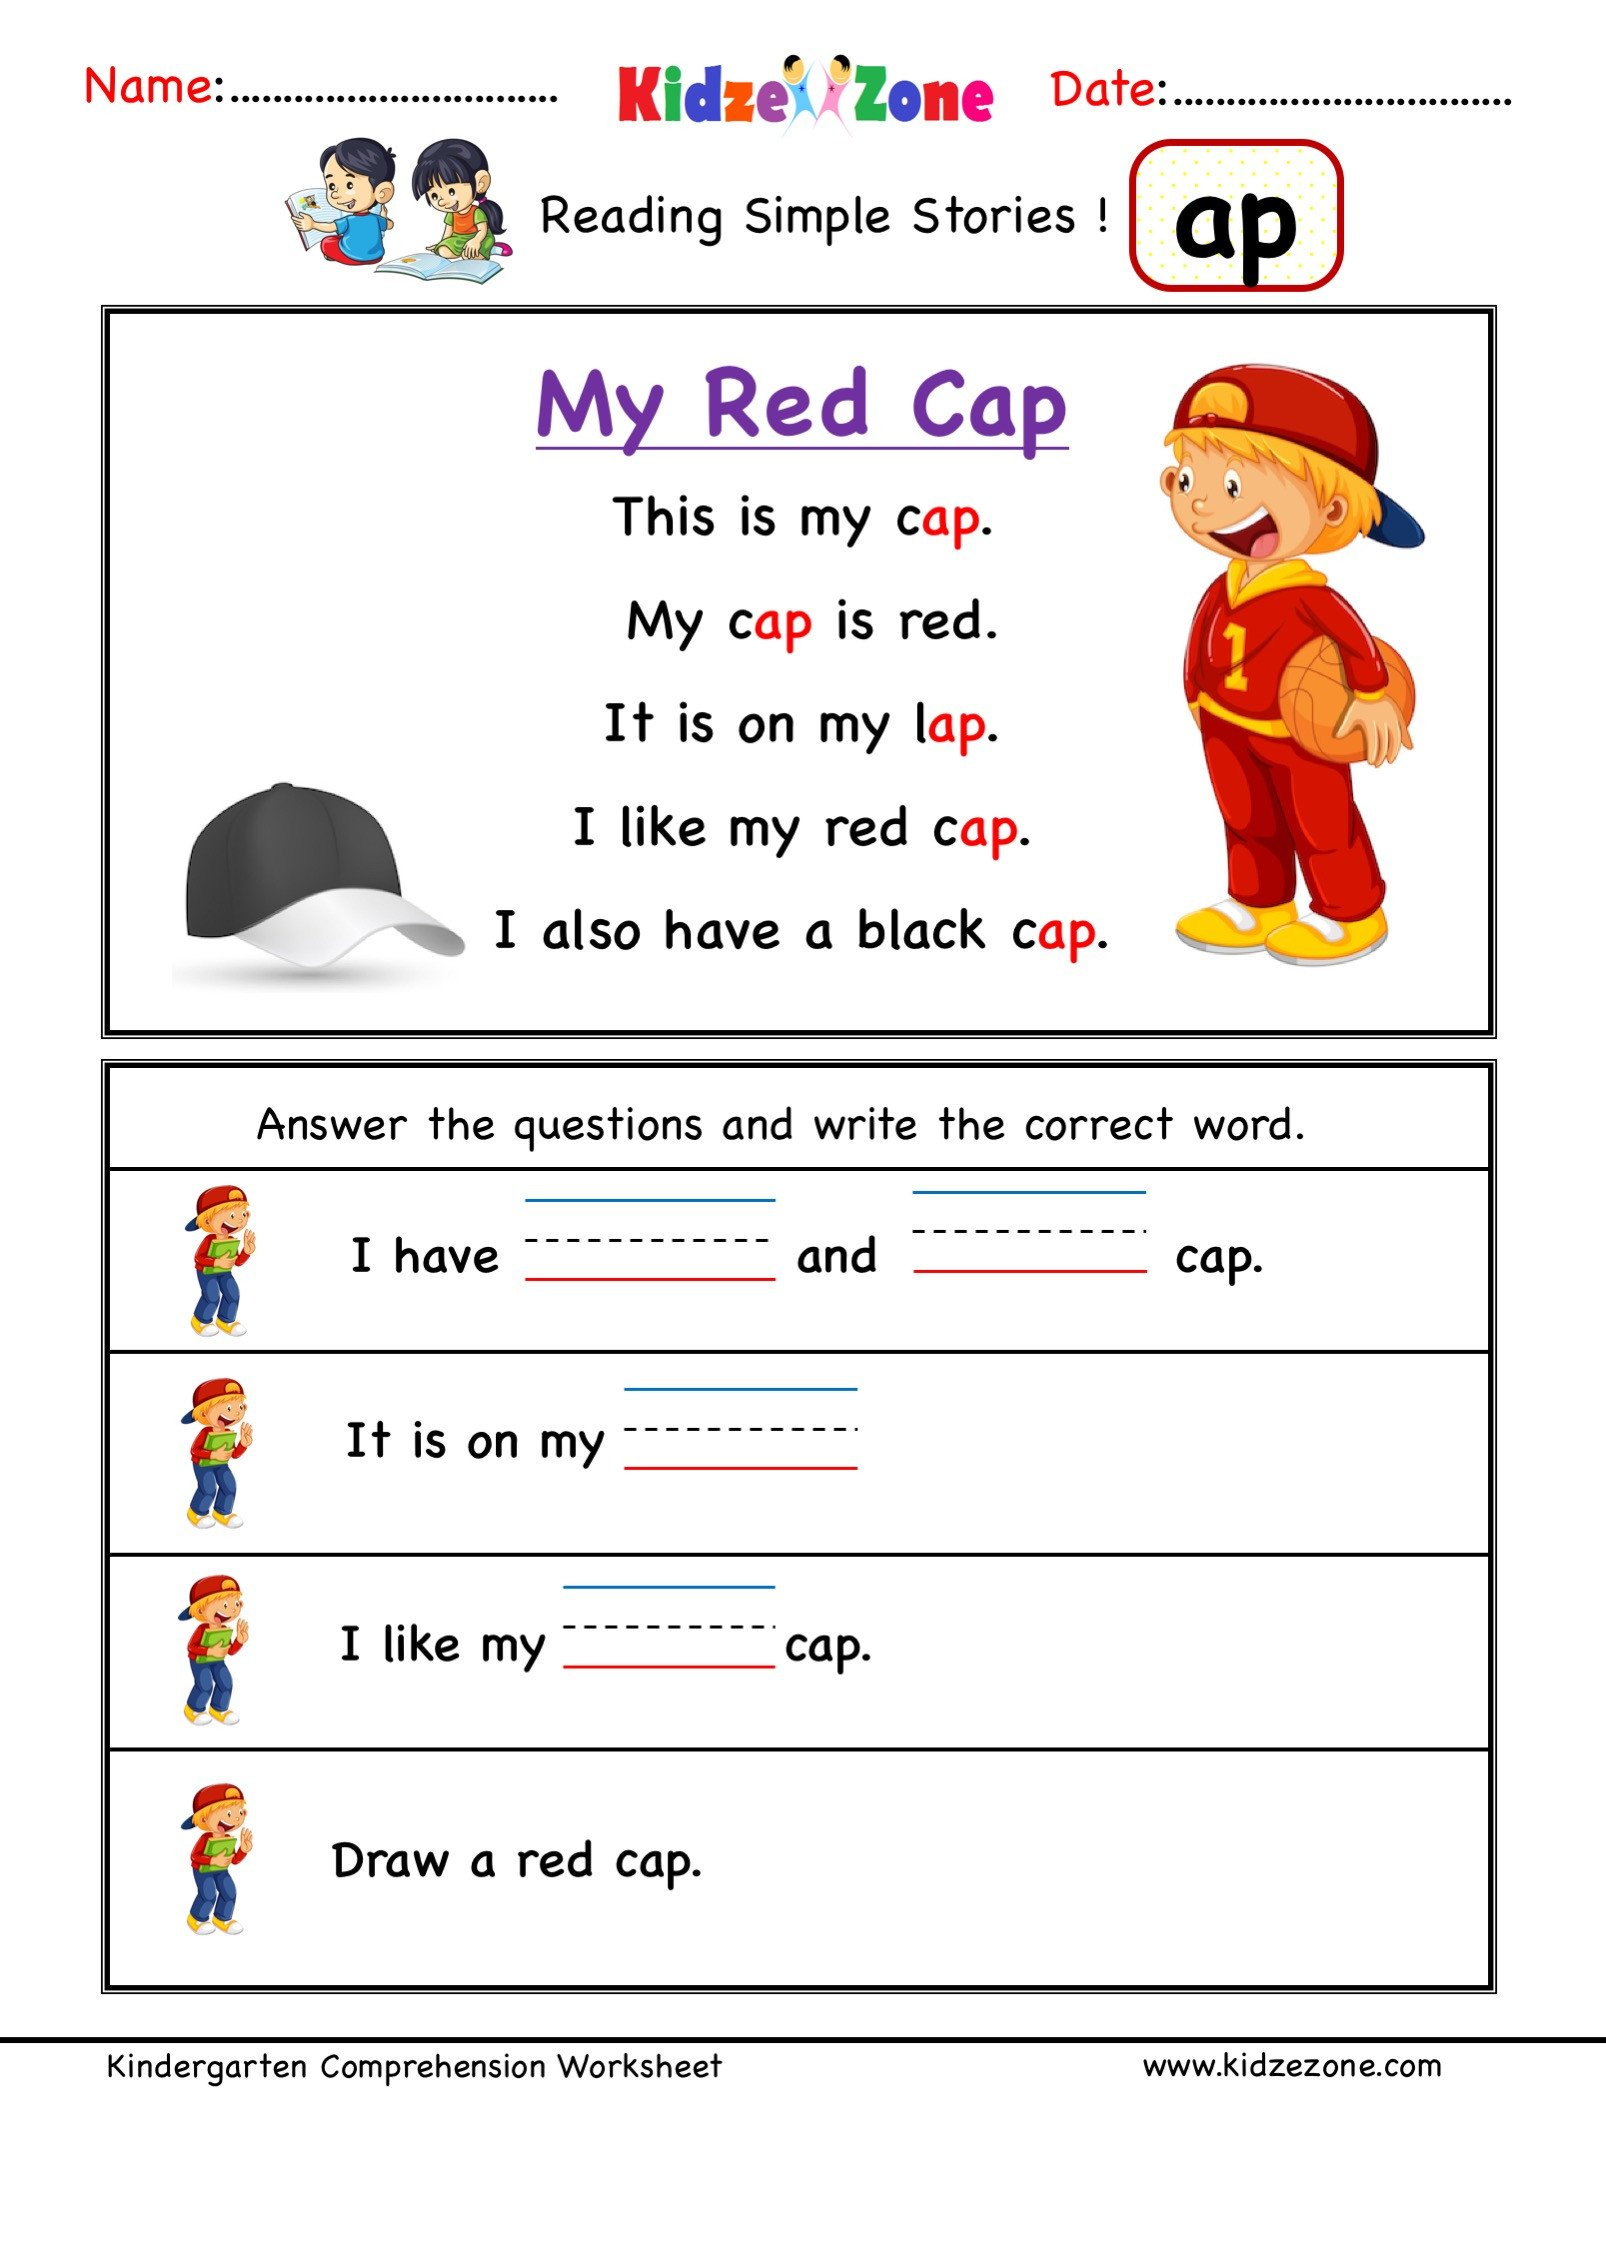 Cvc Words Worksheets Pdf Kindergarten Worksheets Ap Word Family Reading Prehension 4